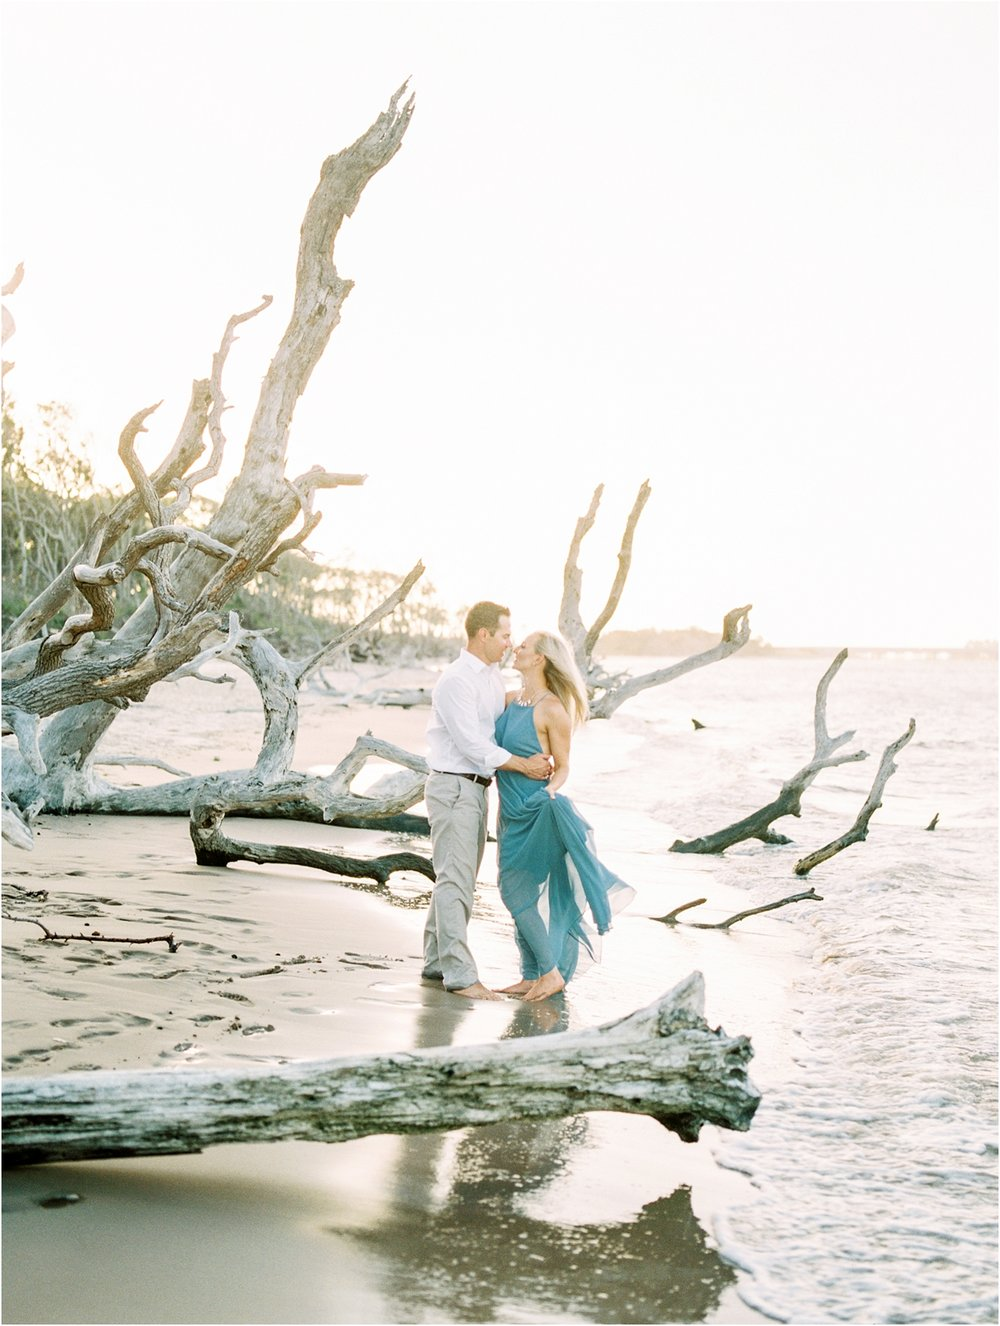 Lisa Silva Photography- Ponte Vedra Beach and Jacksonville, Florida Fine Art Film Wedding Photography- Engagement Shoot at Big Talbot Island_0032.jpg